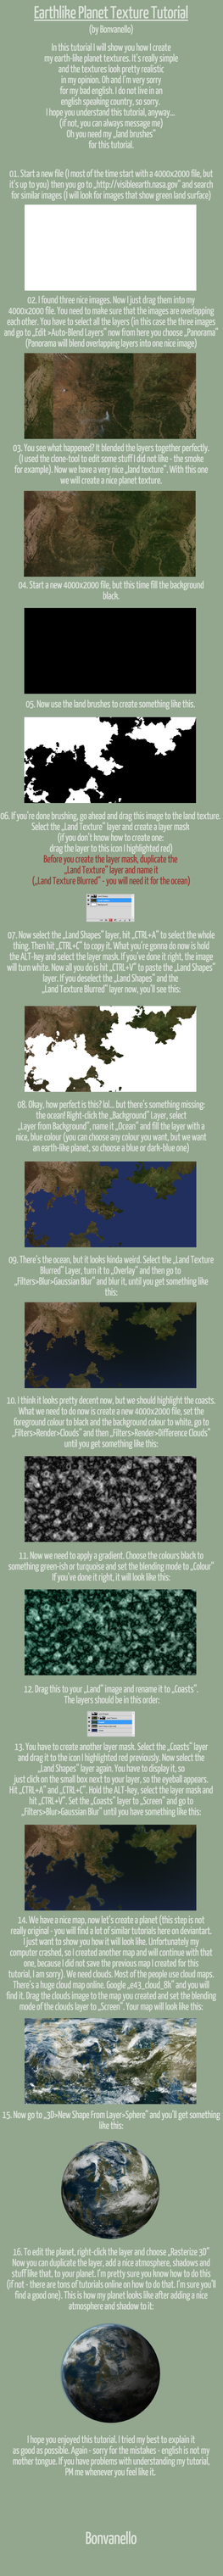 Earth-Like Planet (Texture Tutorial) by Bonvanello